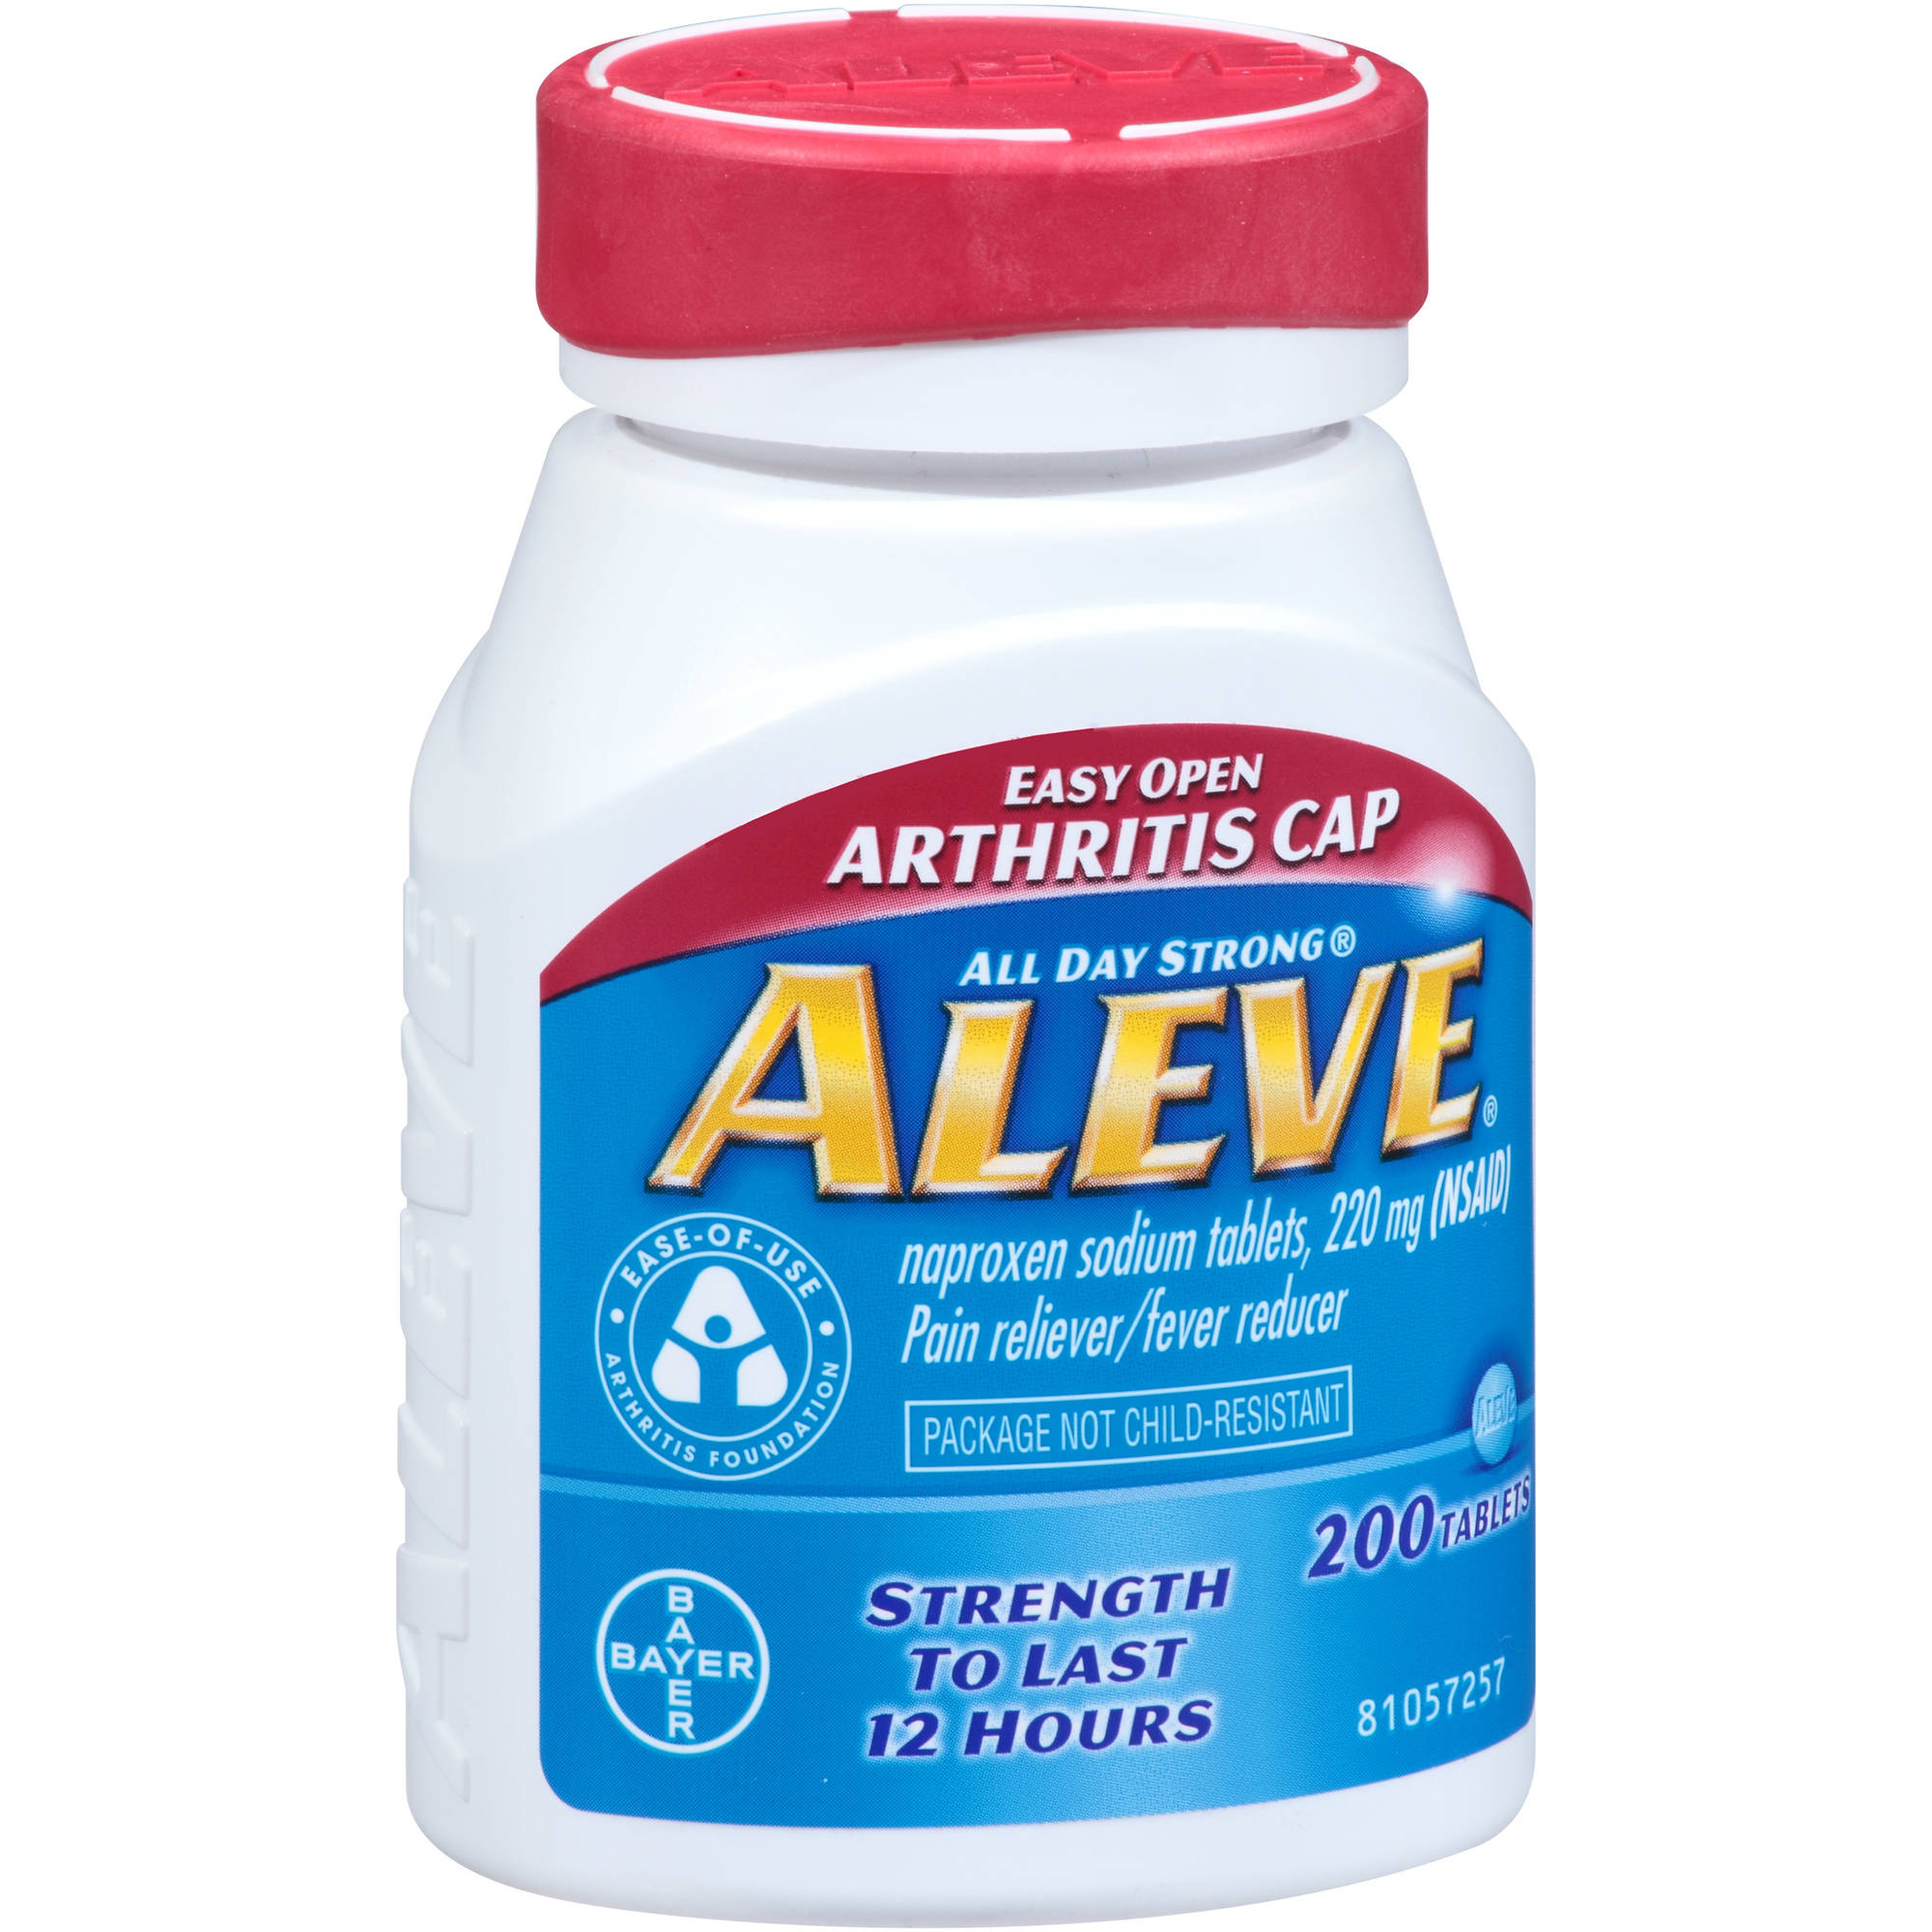 Aleve Pain Reliever/Fever Reducer Naproxen Sodium Tablets, 220mg, 200 count